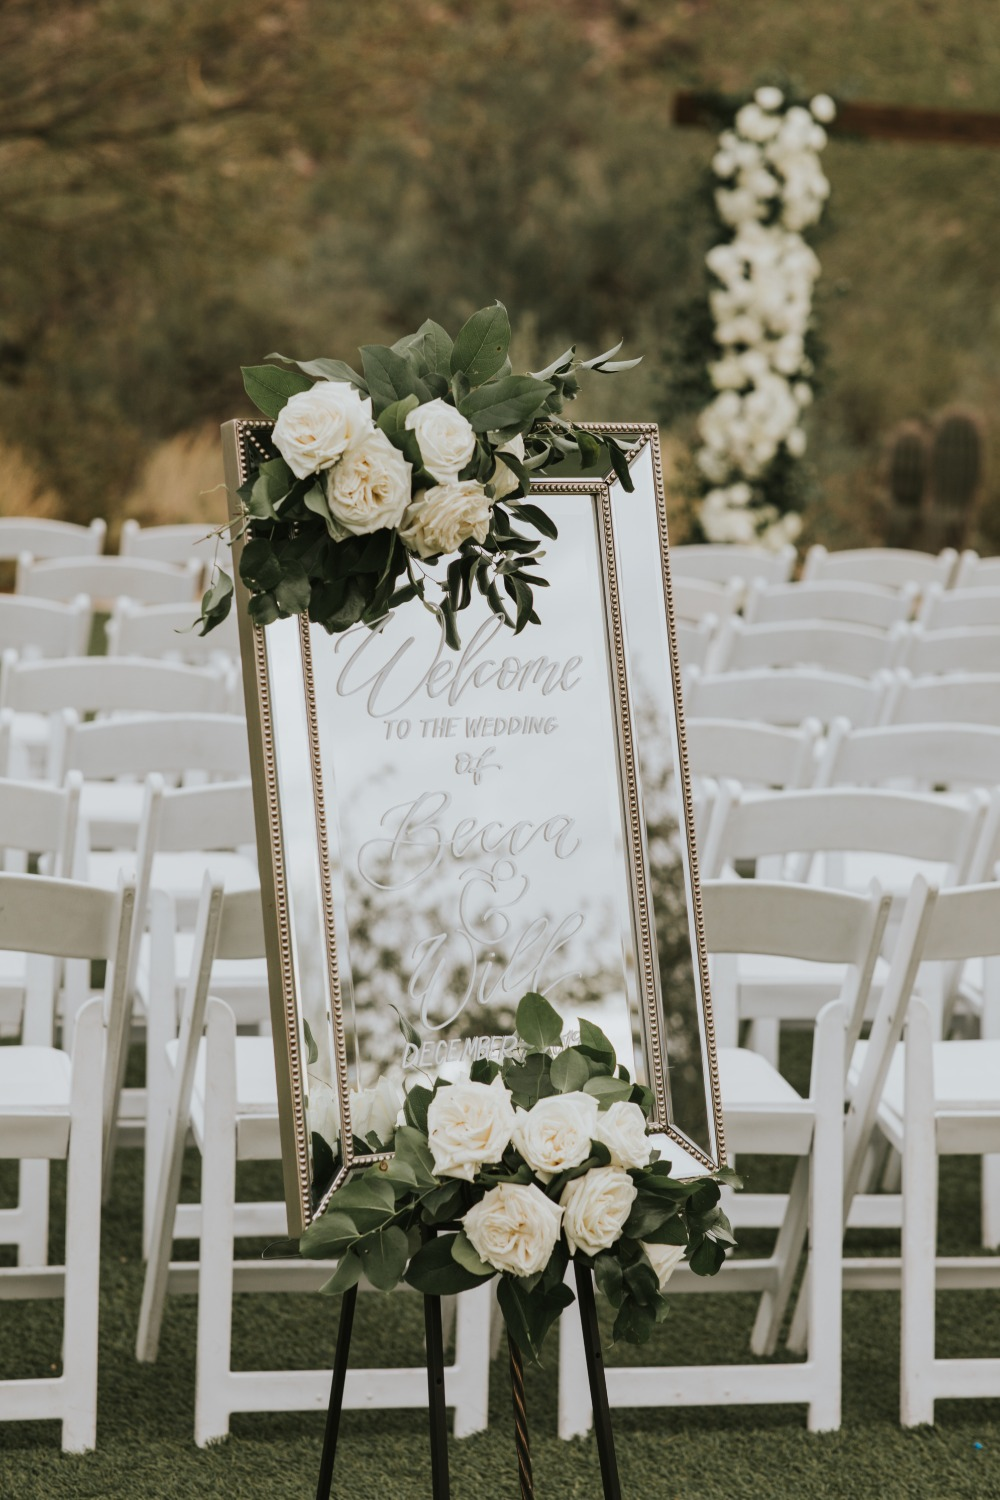 Mirror wedding sign adorned with florals